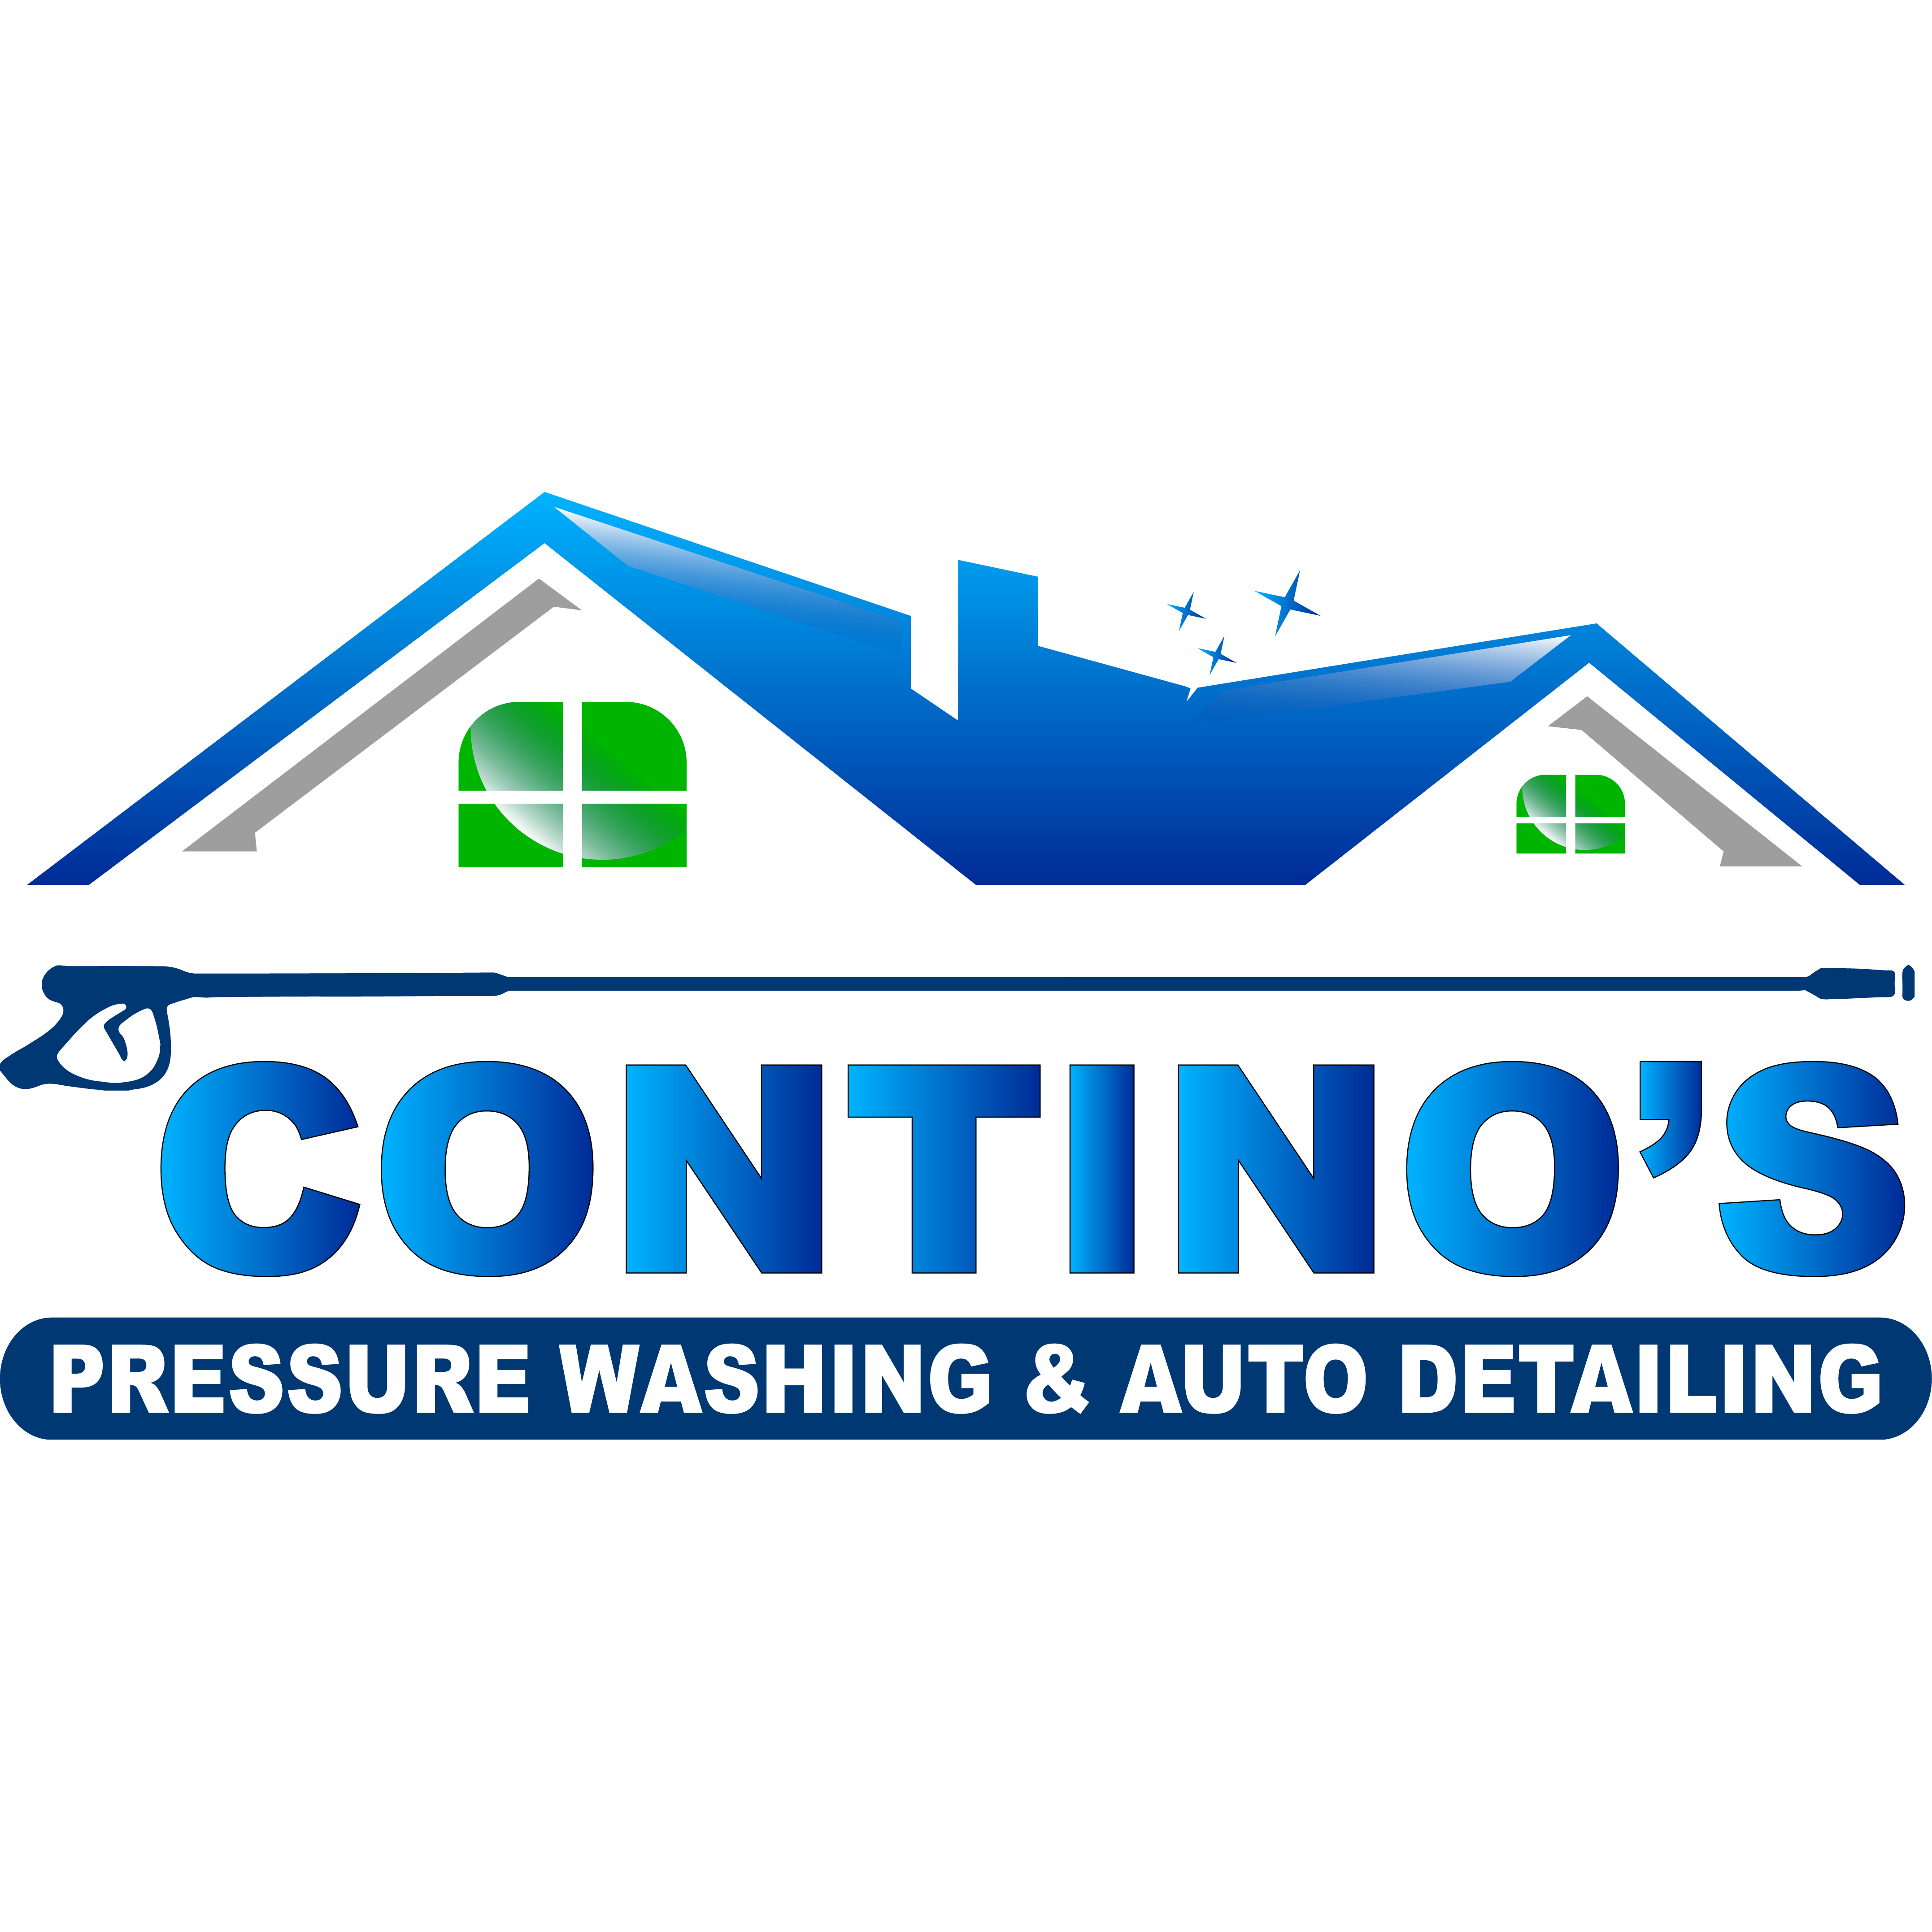 Contino's Pressure Washing Auto Detailing Services